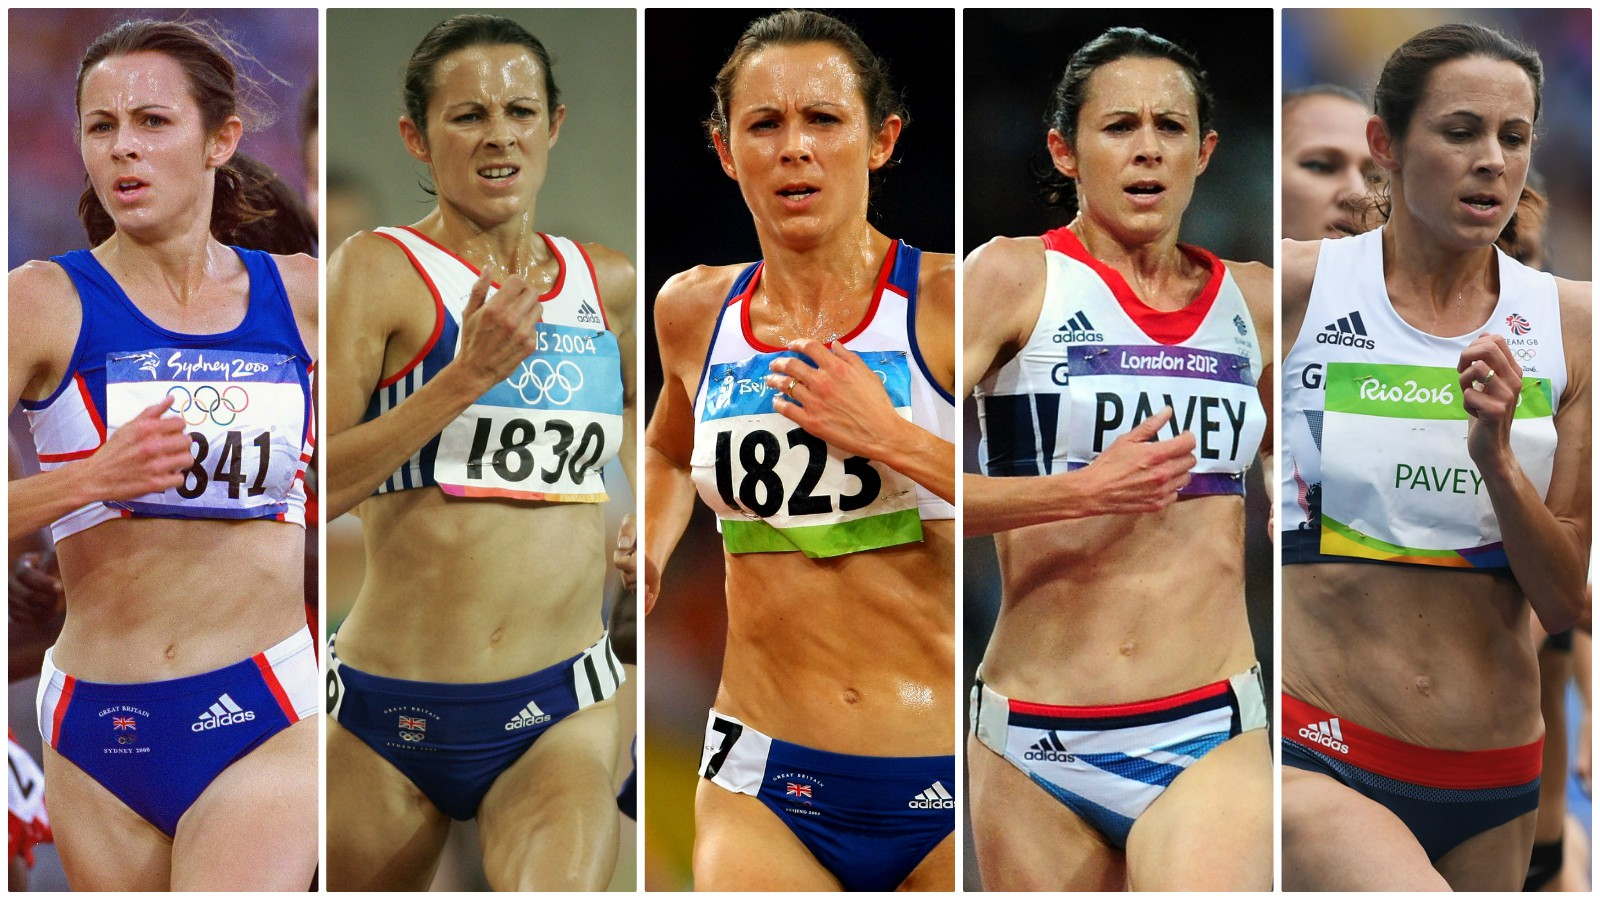 'I forget how old I am' - Pavey, 45, targets record sixth Olympics